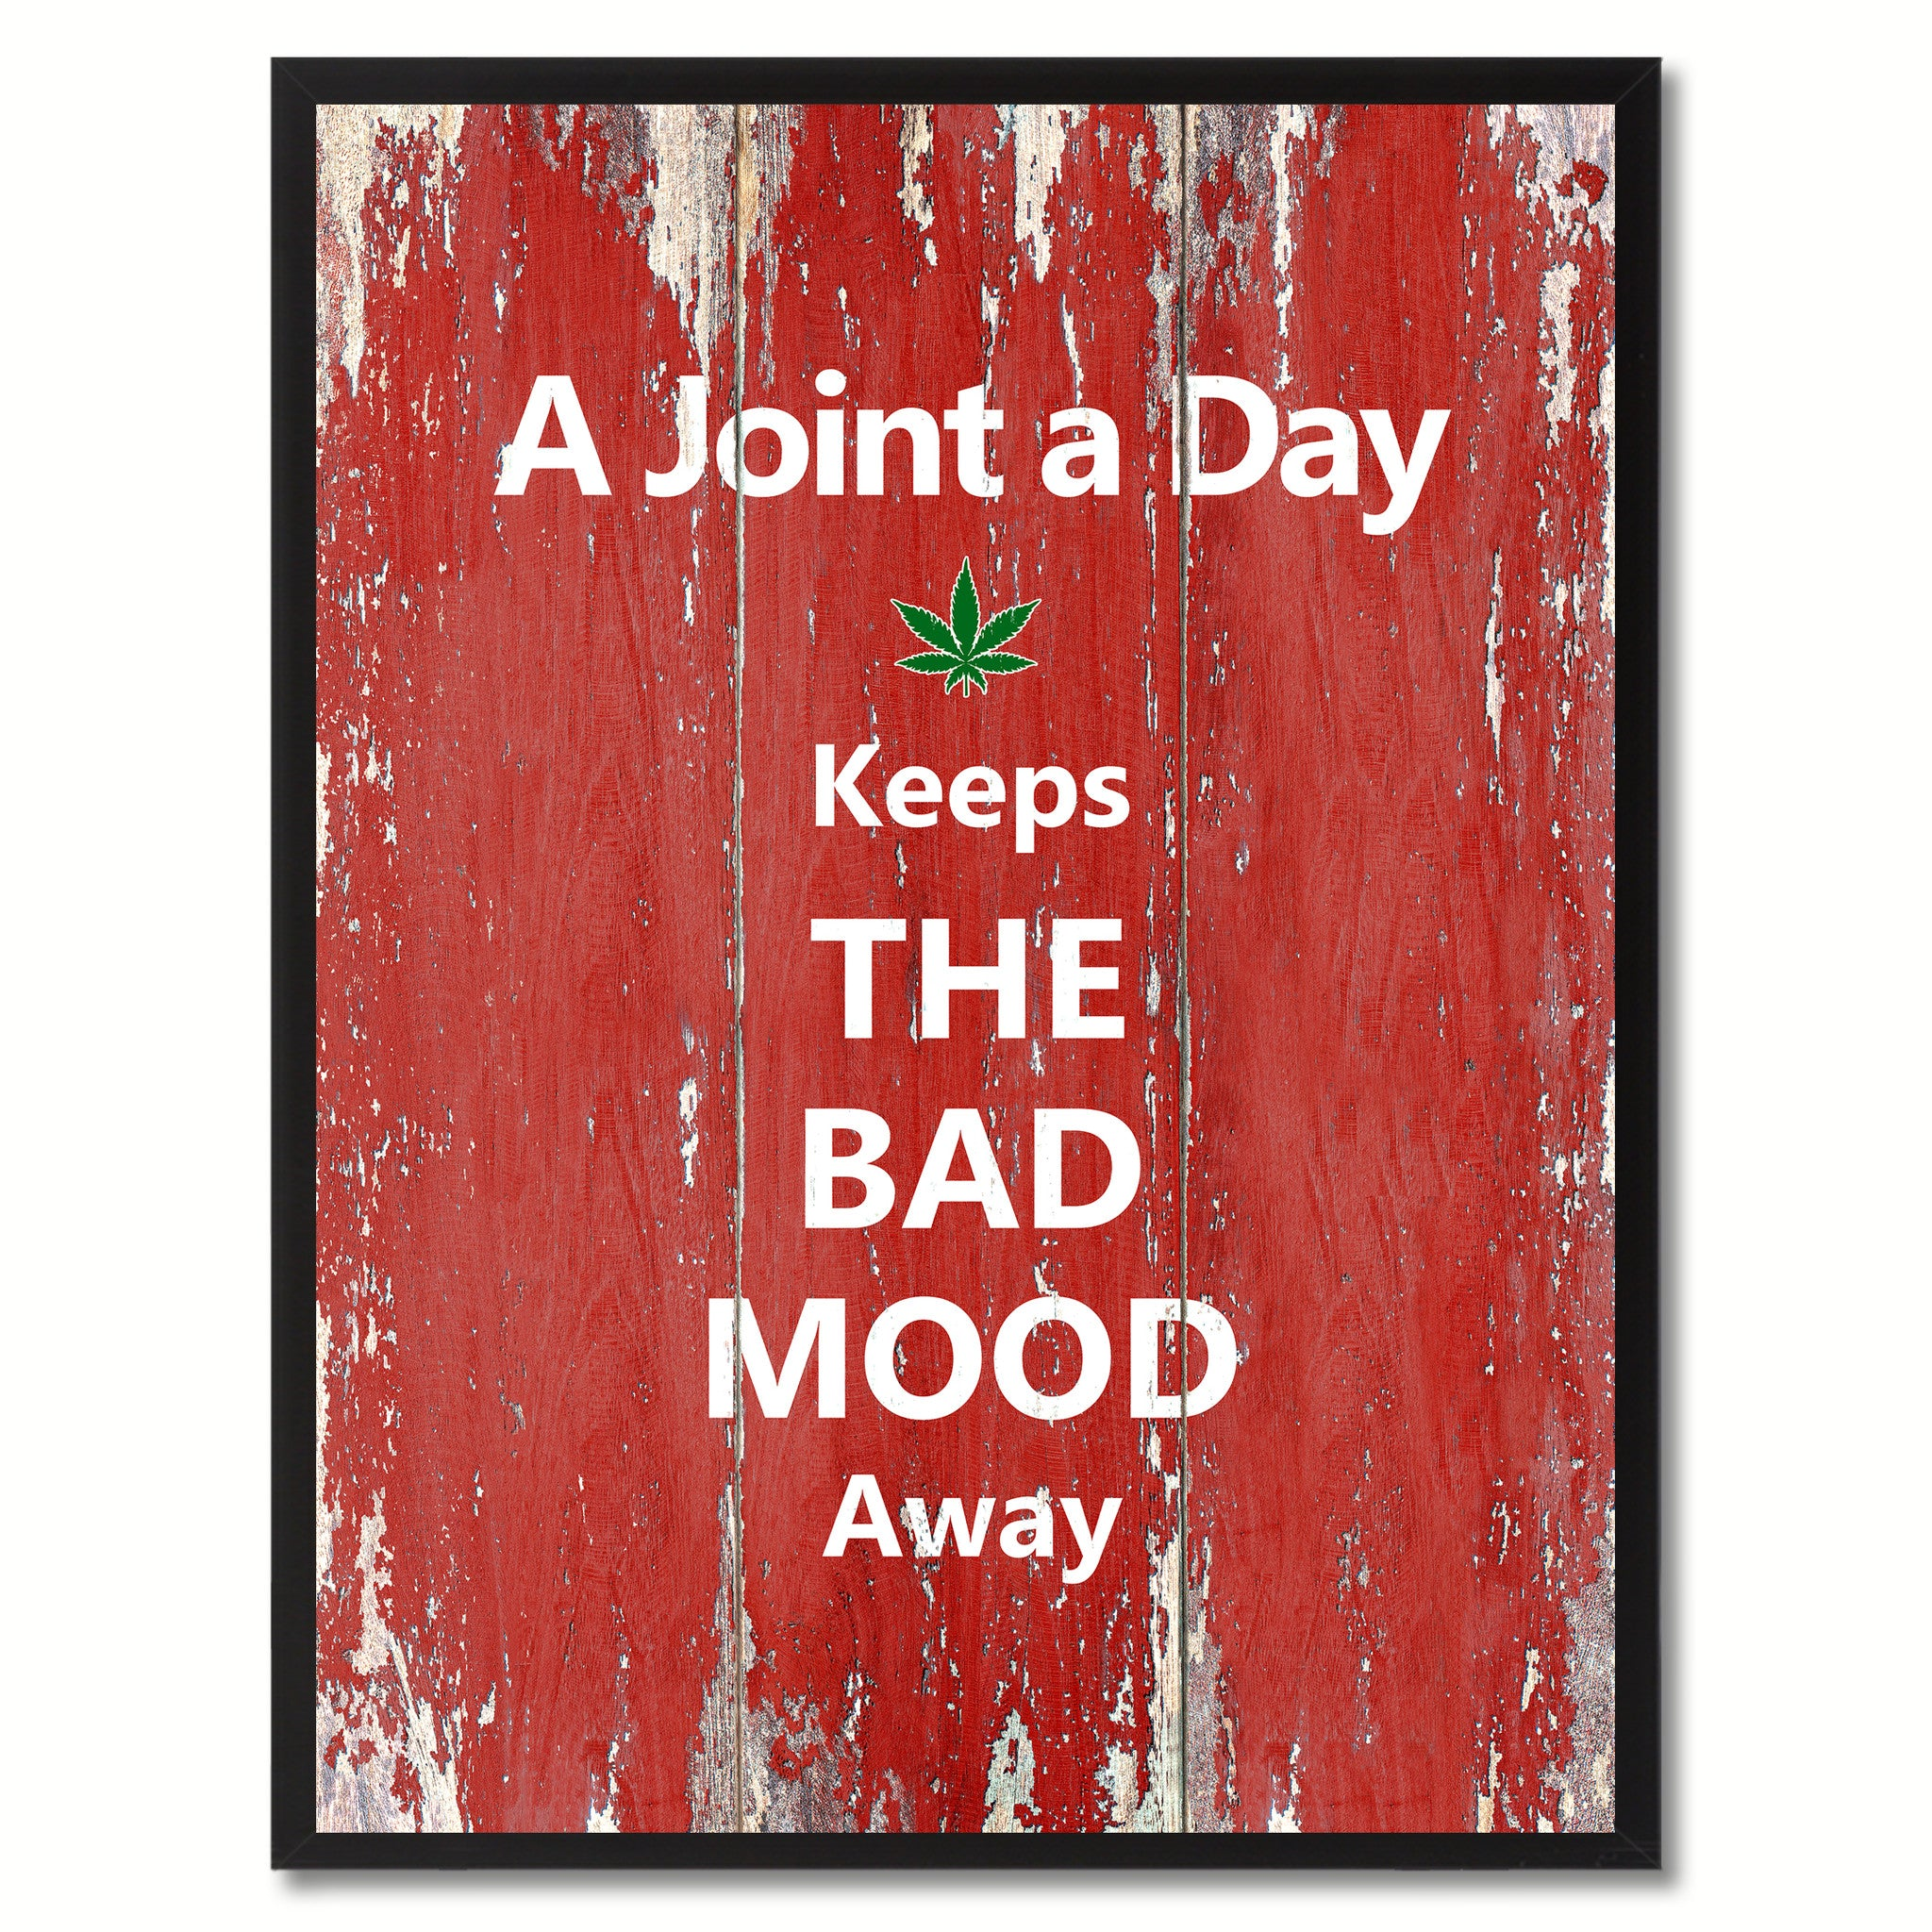 A joint a day Adult Quote Saying Gift Ideas Home Décor Wall Art